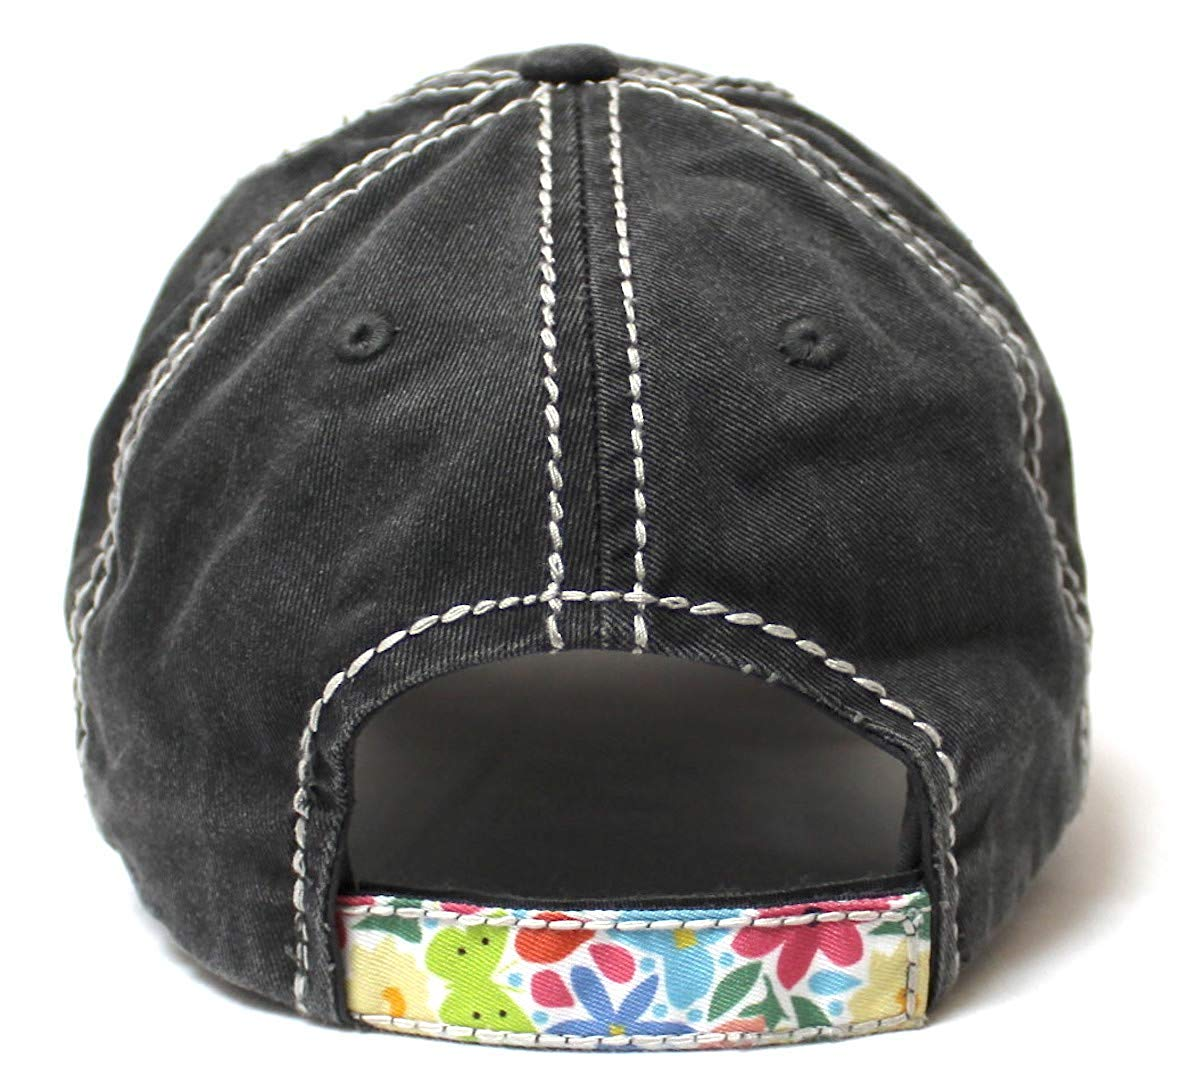 Cactus Floral Patchwork Embroidery Baseball Cap w/Monogram Bloom Detail, Charcoal - Caps 'N Vintage